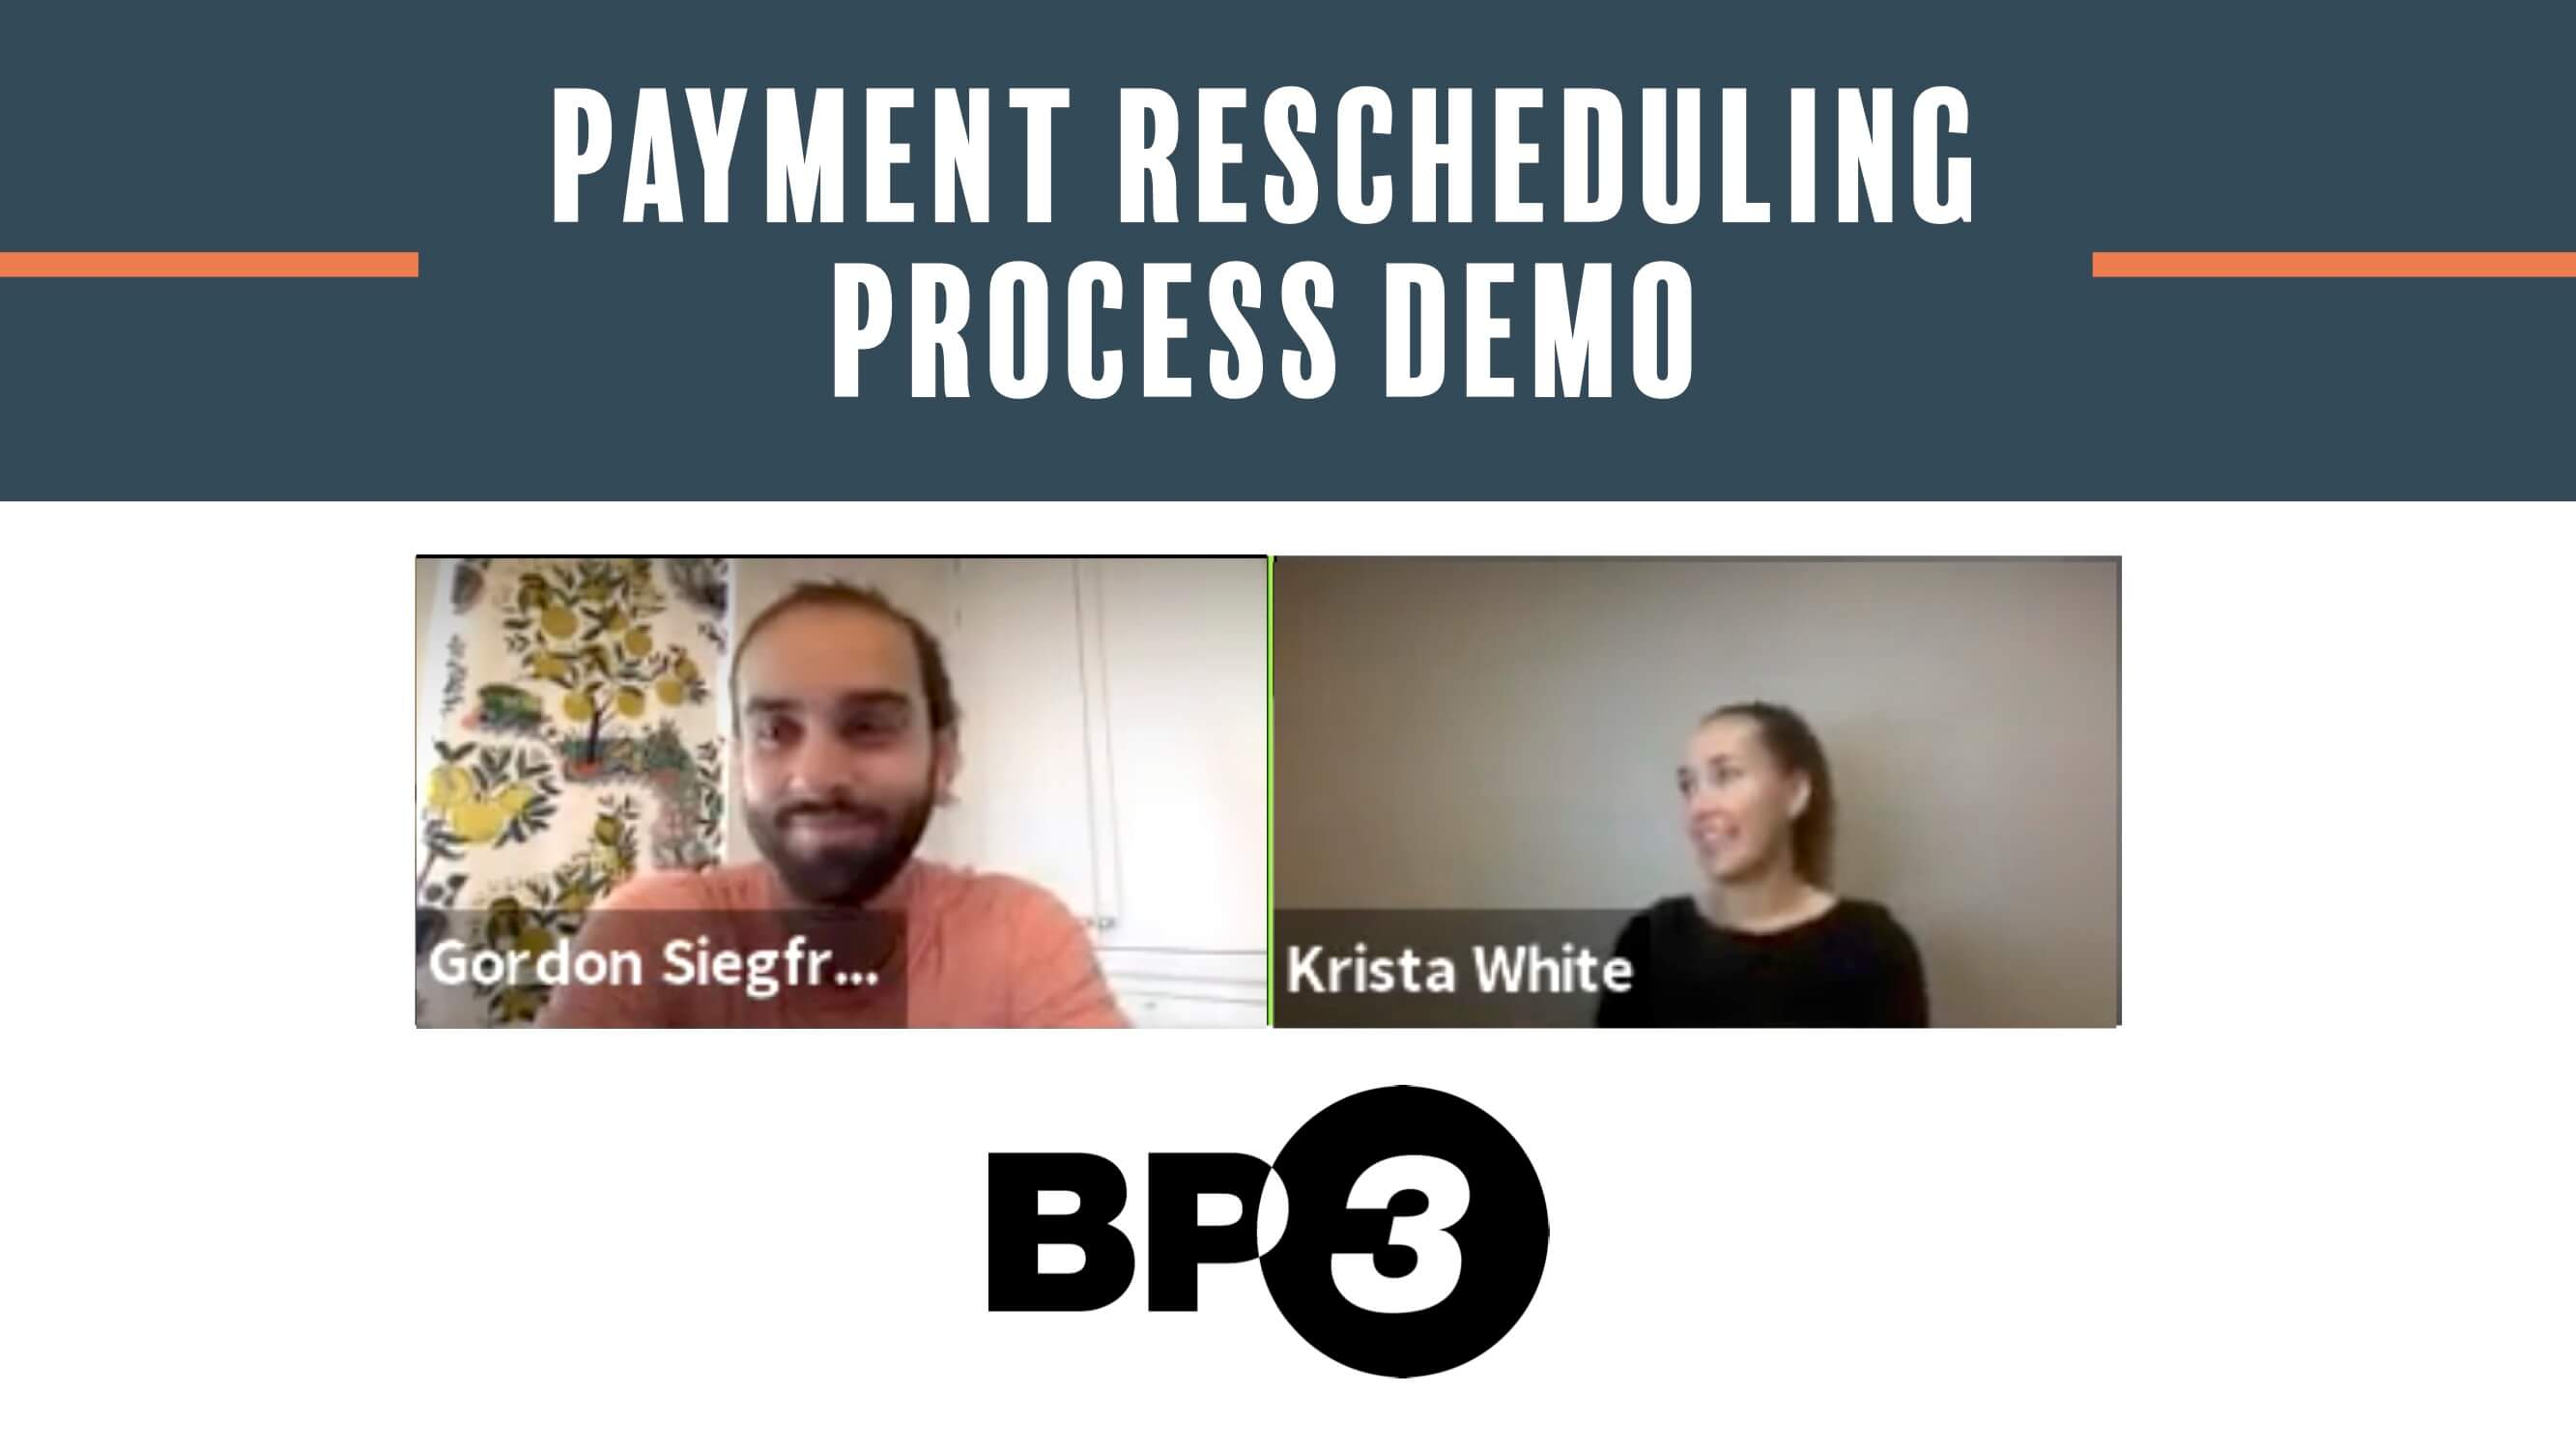 Payment Rescheduling Process Demo